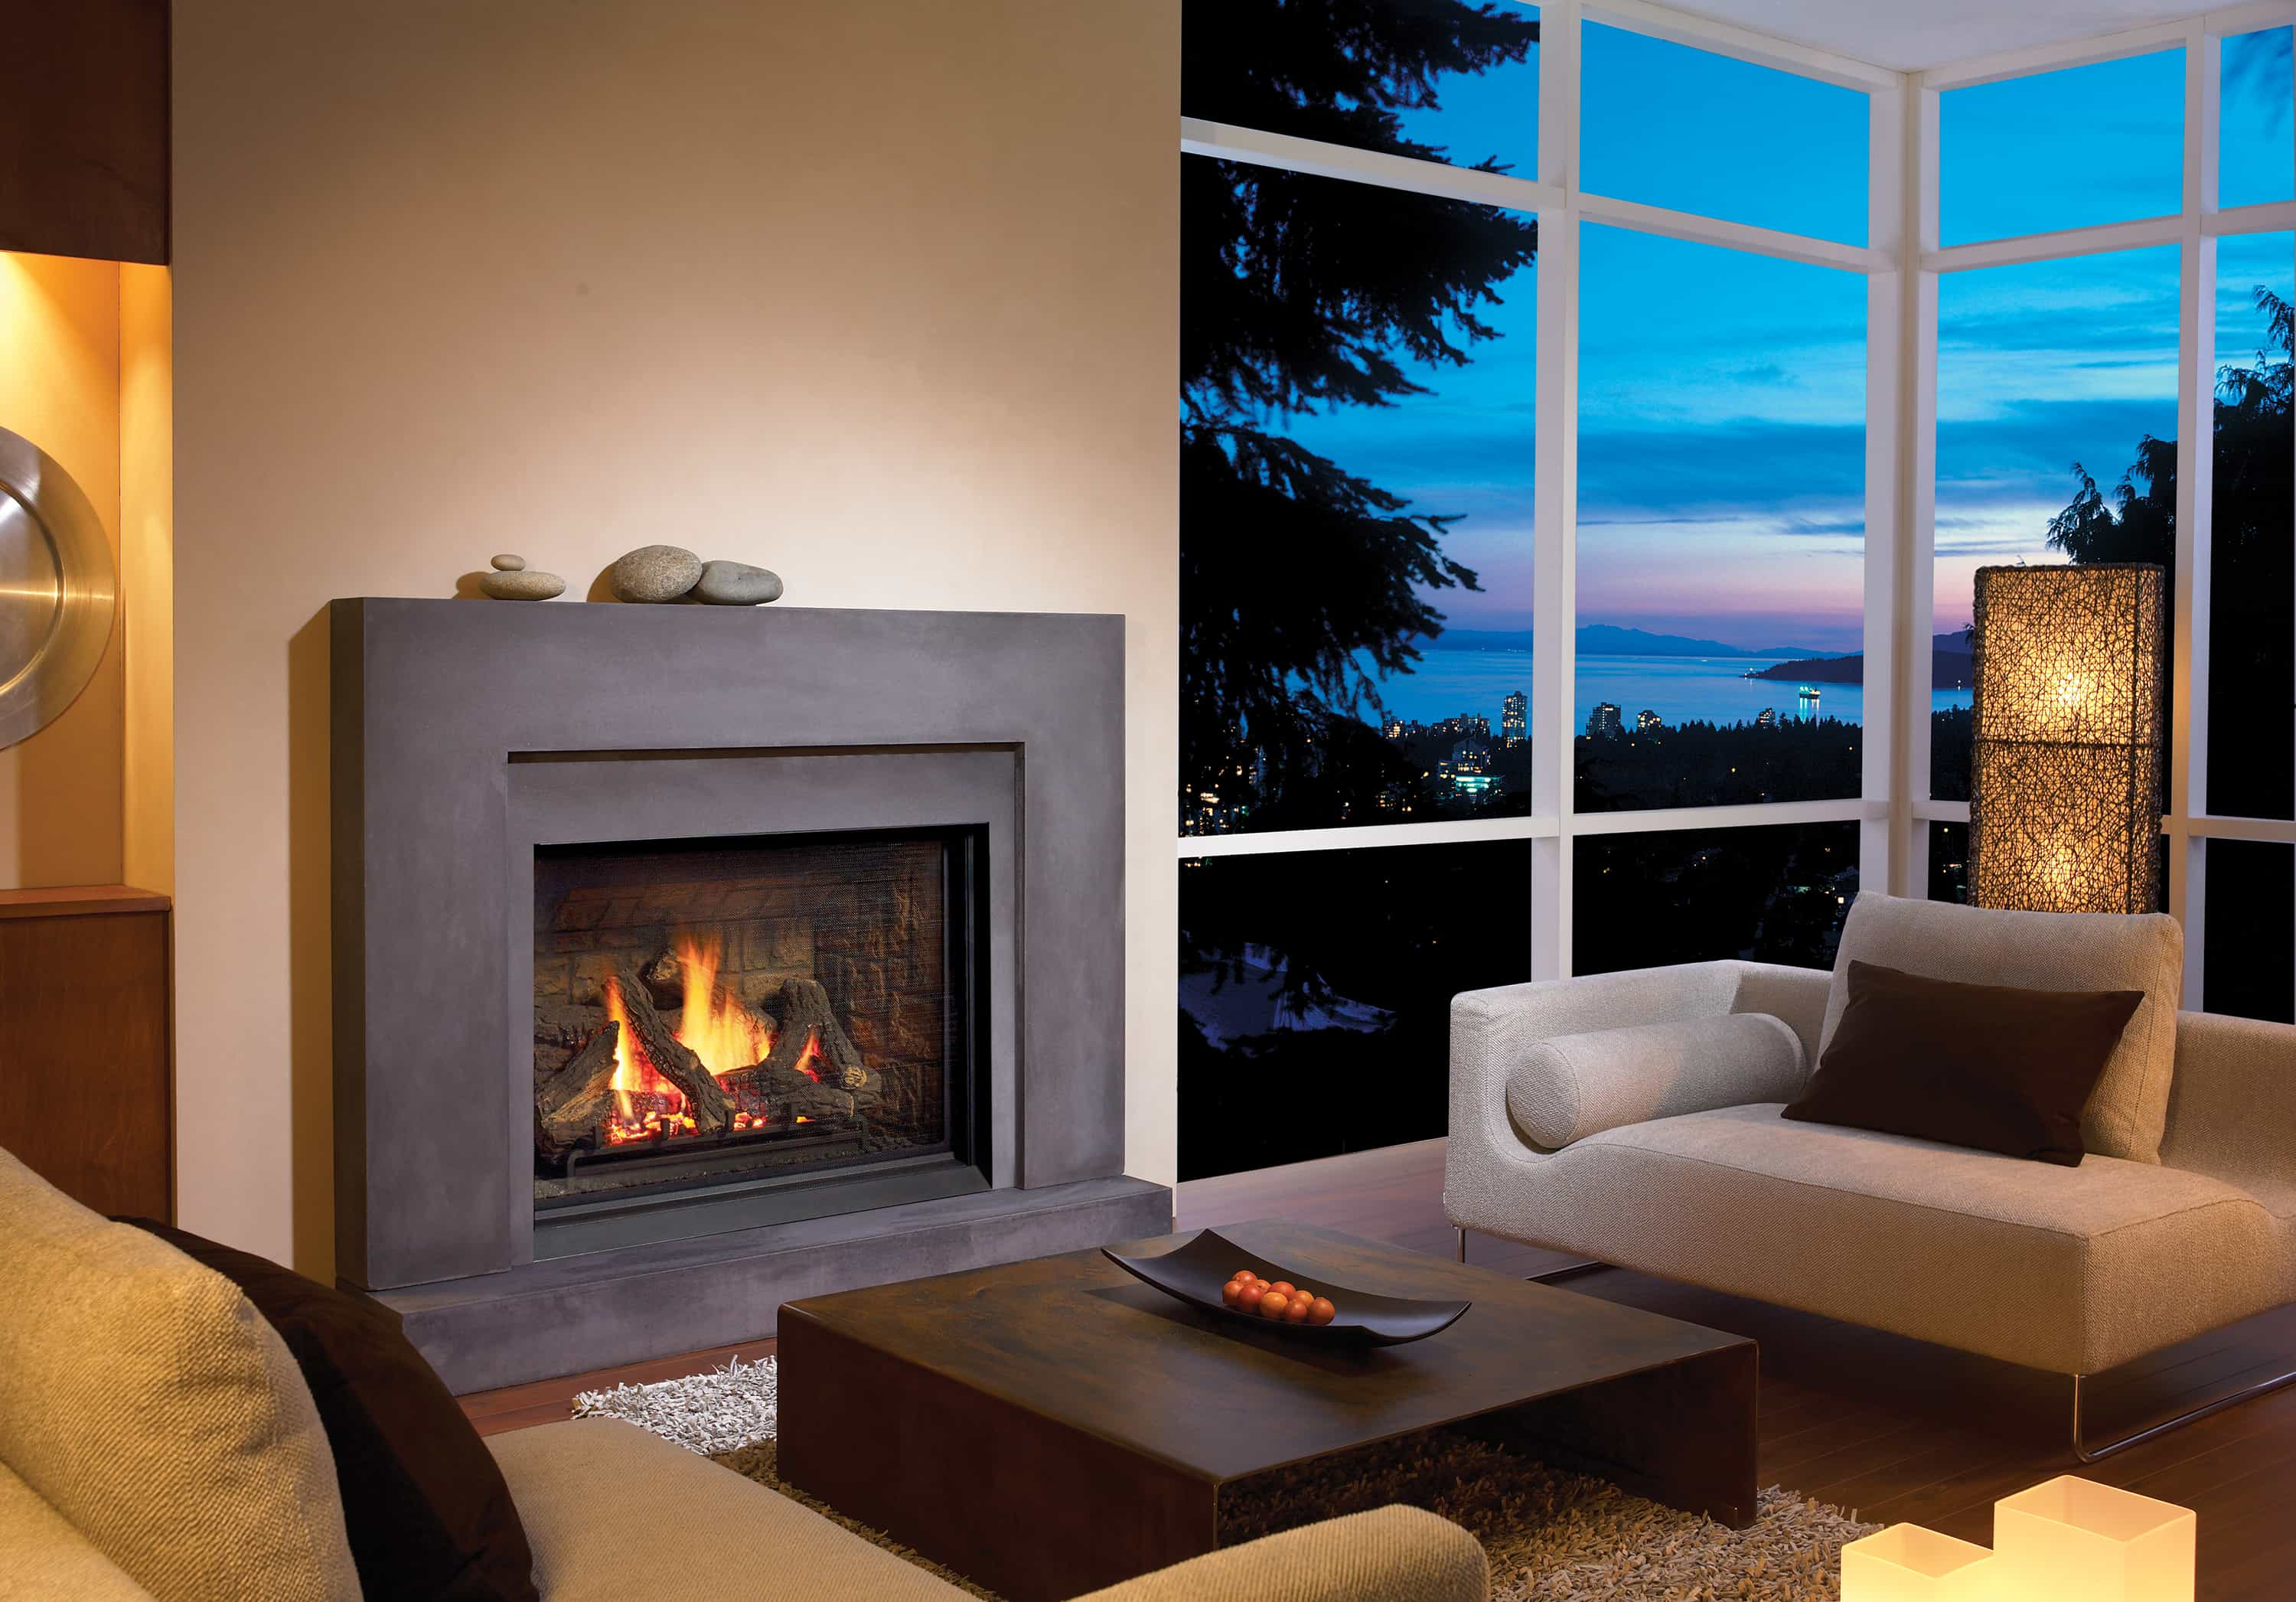 REGENCY B36XTCE DIRECT VENT GAS FIREPLACE